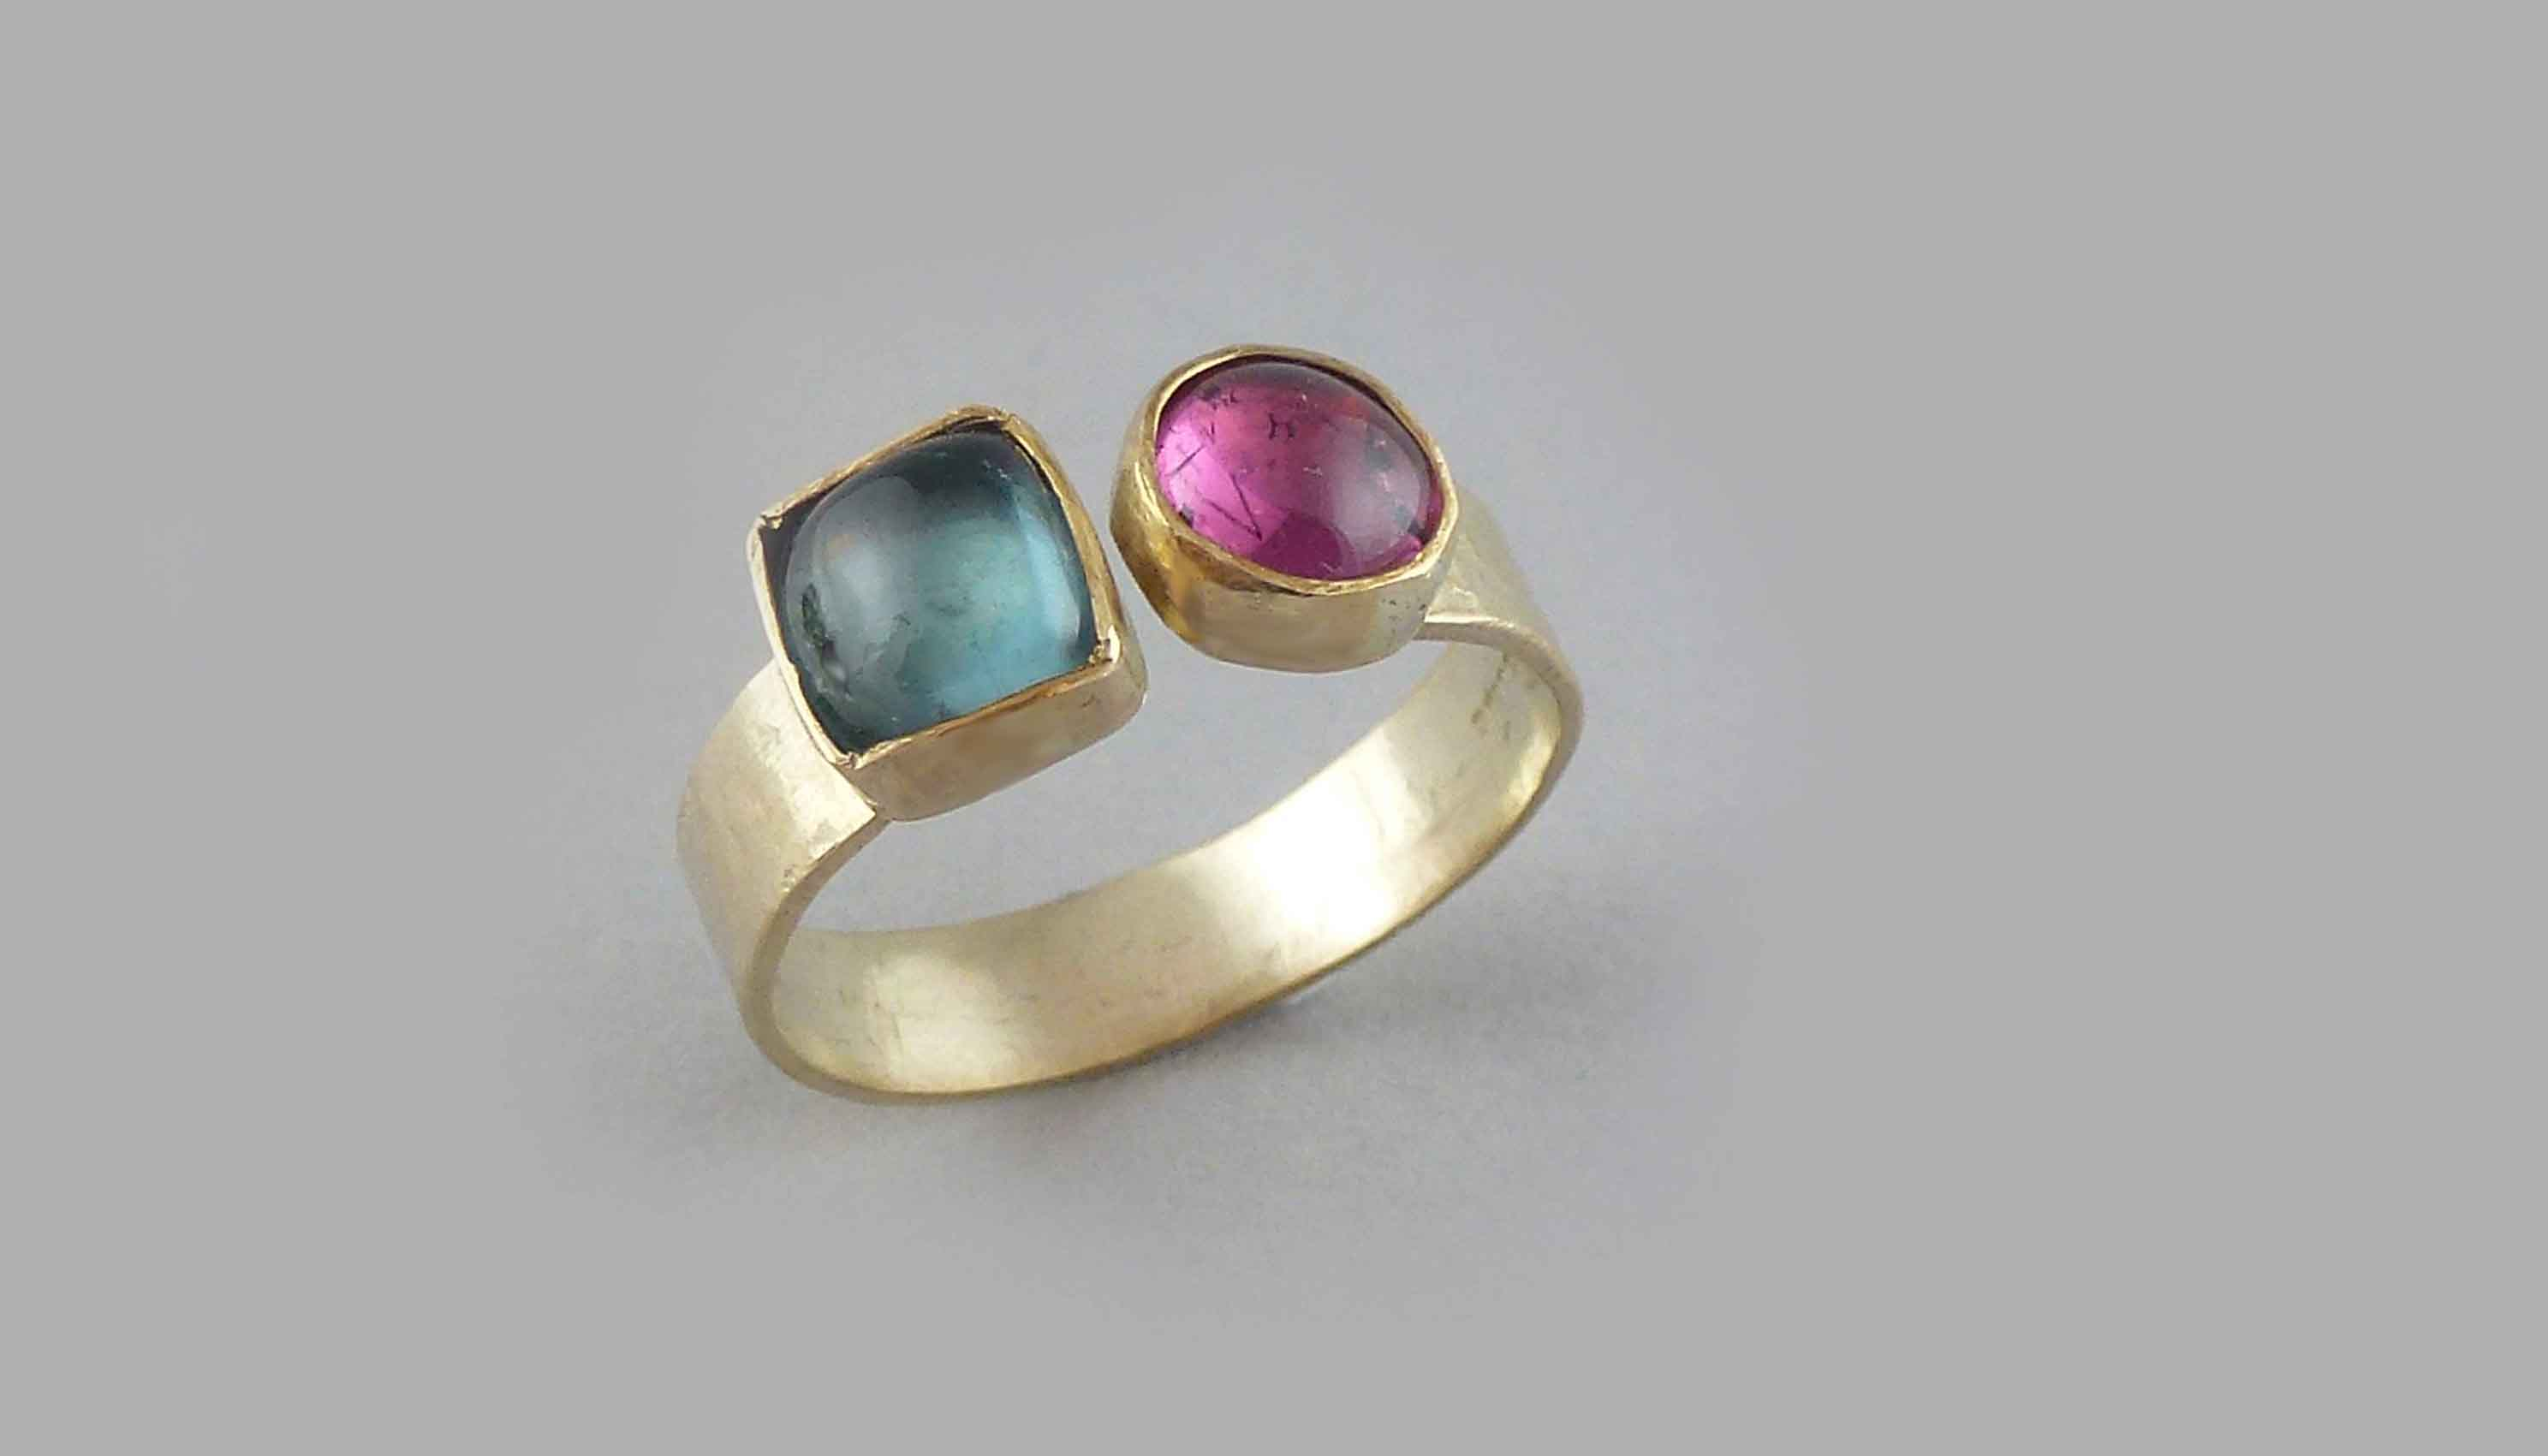 9ct-gold-pink-and-green-tourmaline ring